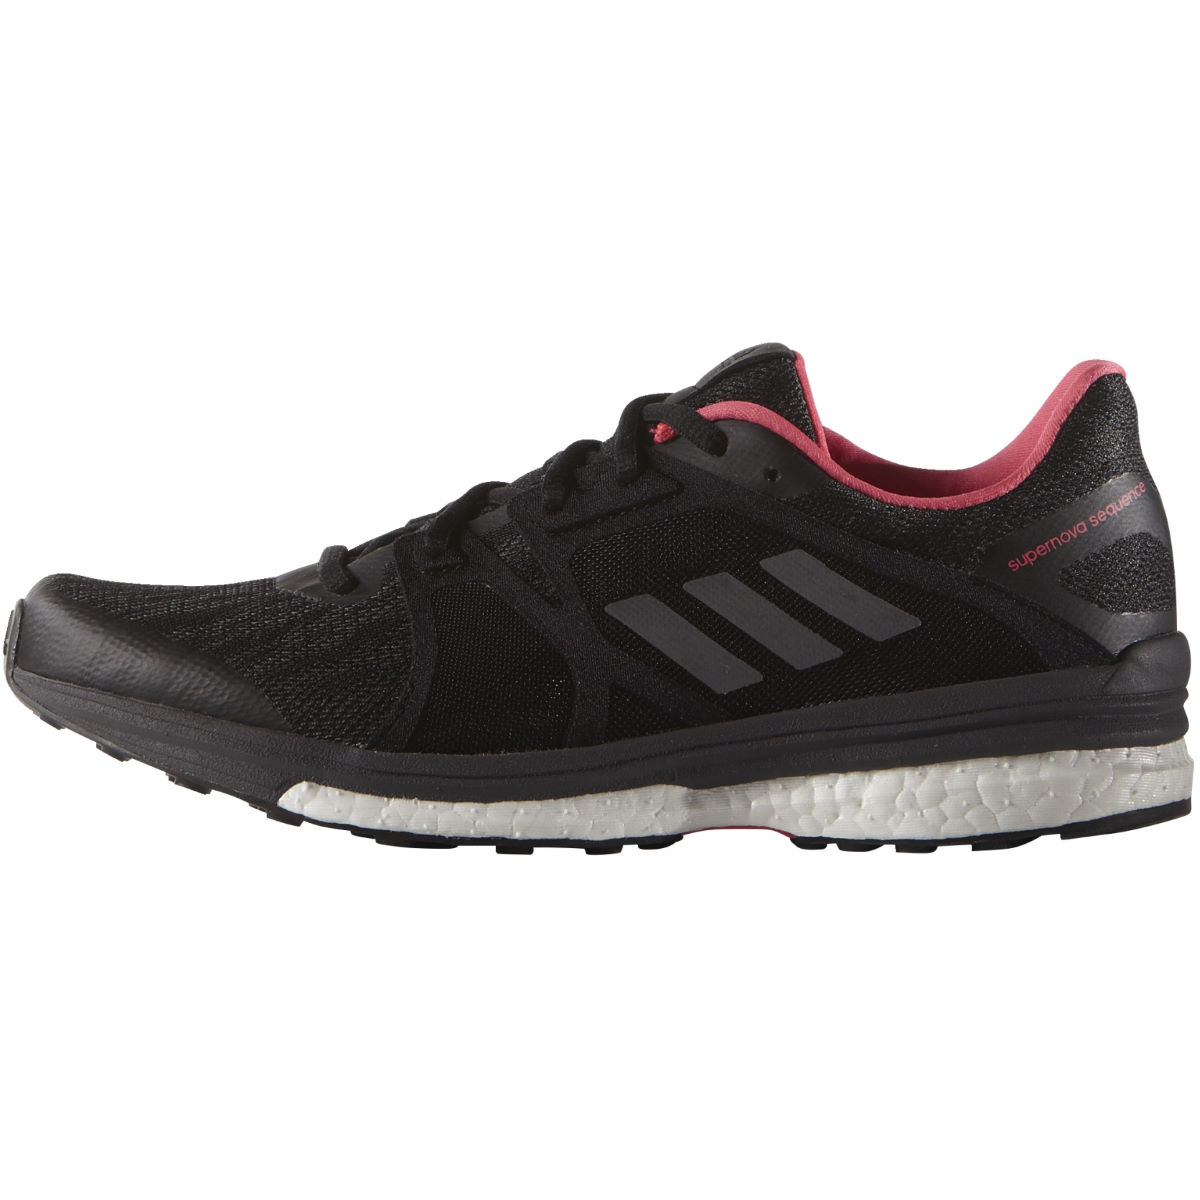 Adidas Womens Supernova Sequence 9 Shoes (AW16)   Stability Running Shoes